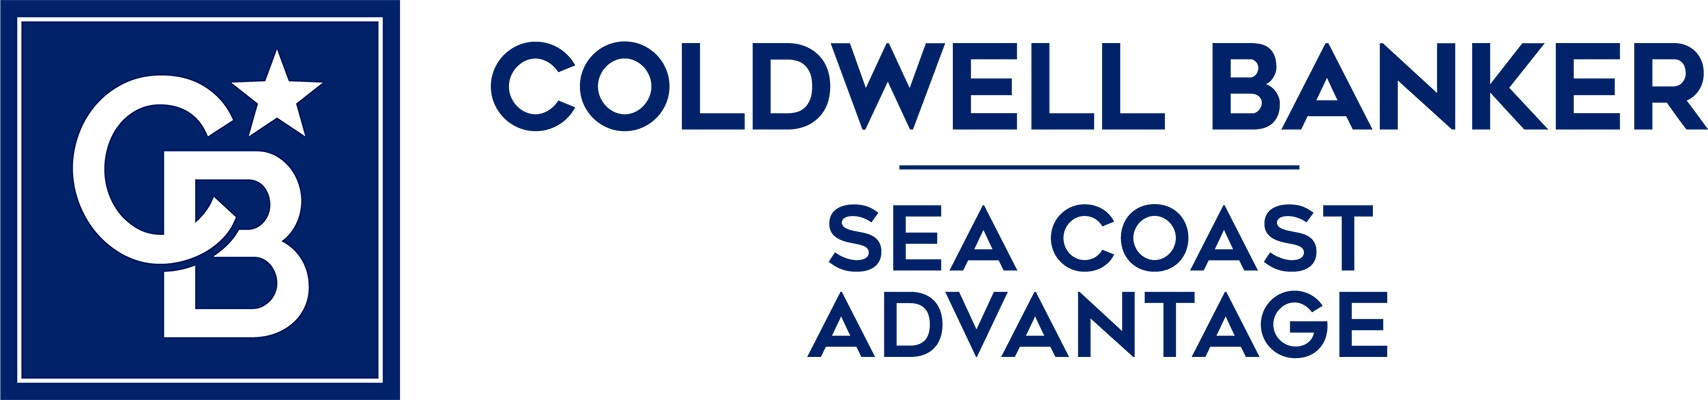 John Hussmann - Coldwell Banker Sea Coast Advantage Realty Logo